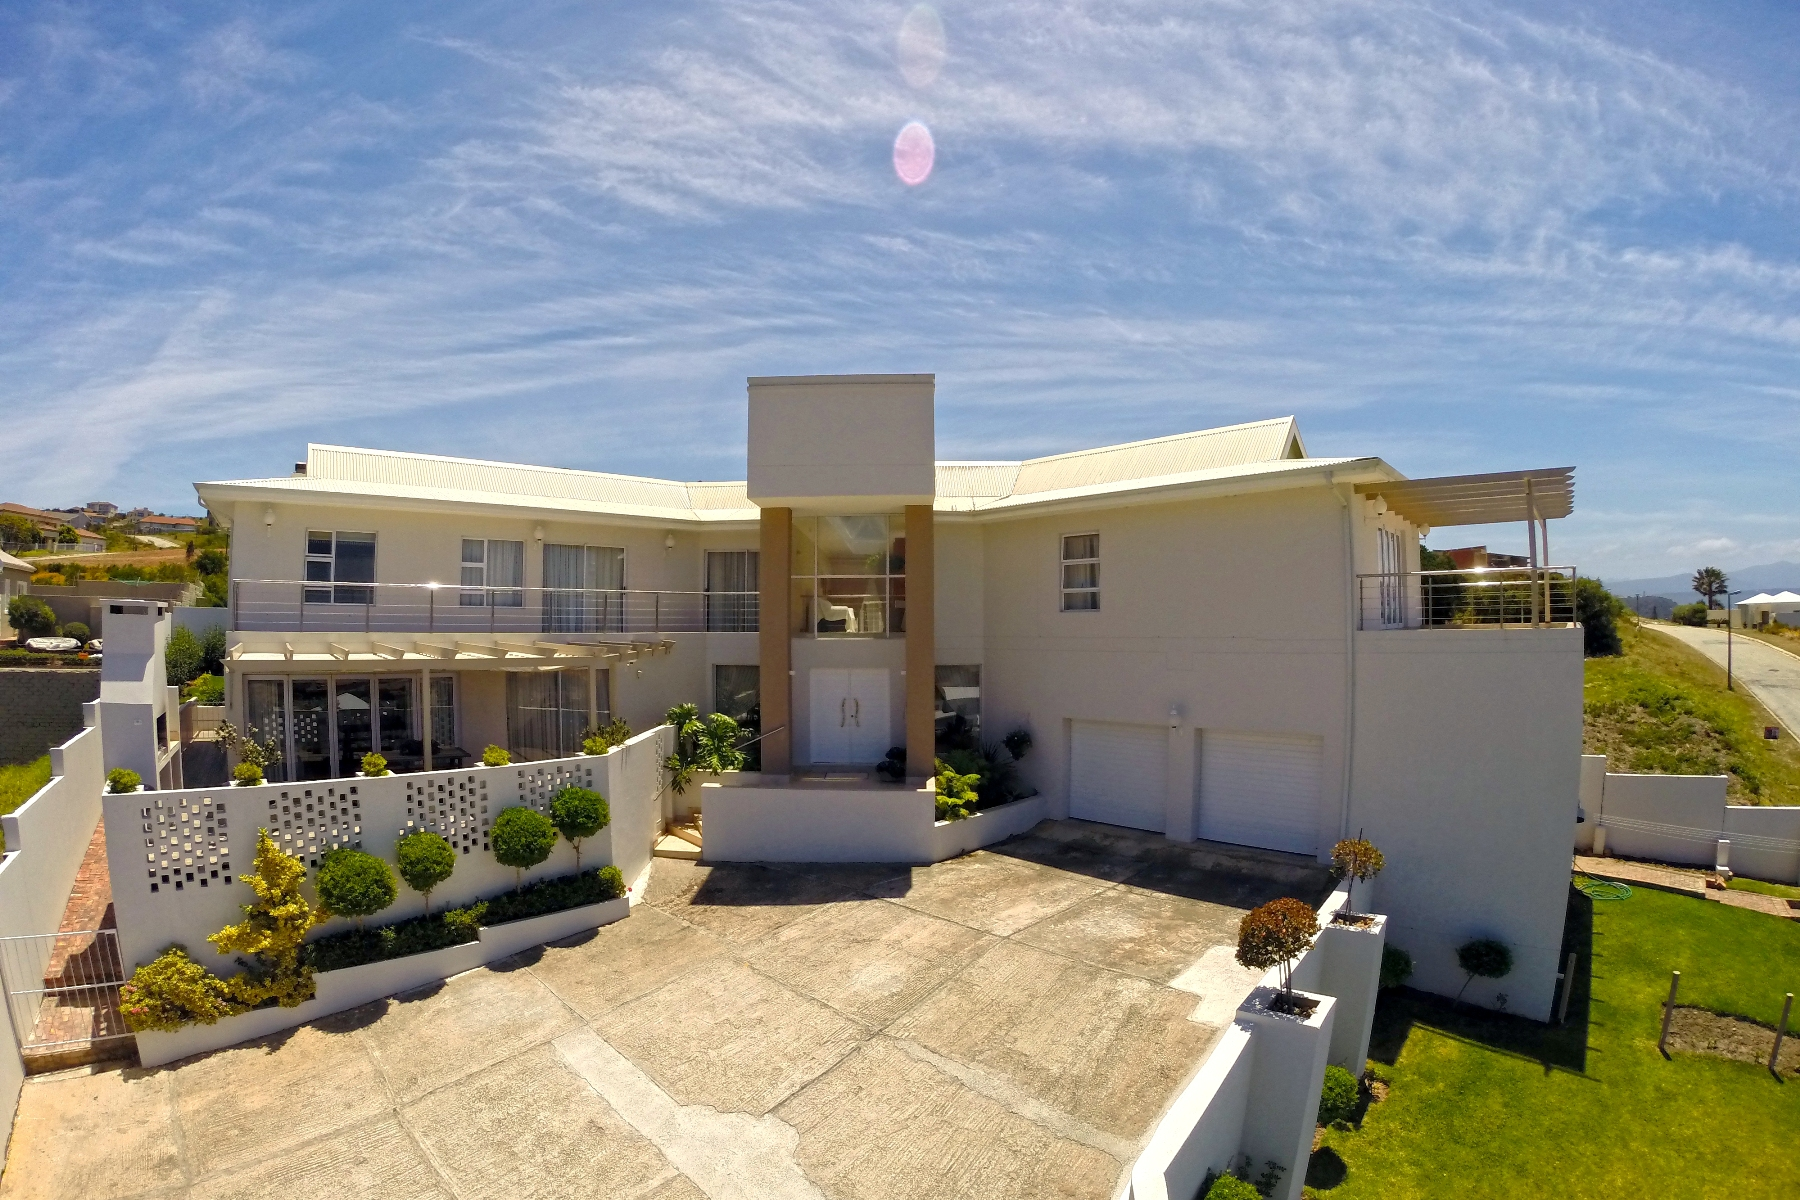 Single Family Home for Sale at Light and Spacious Plettenberg Bay, Western Cape, 6600 South Africa